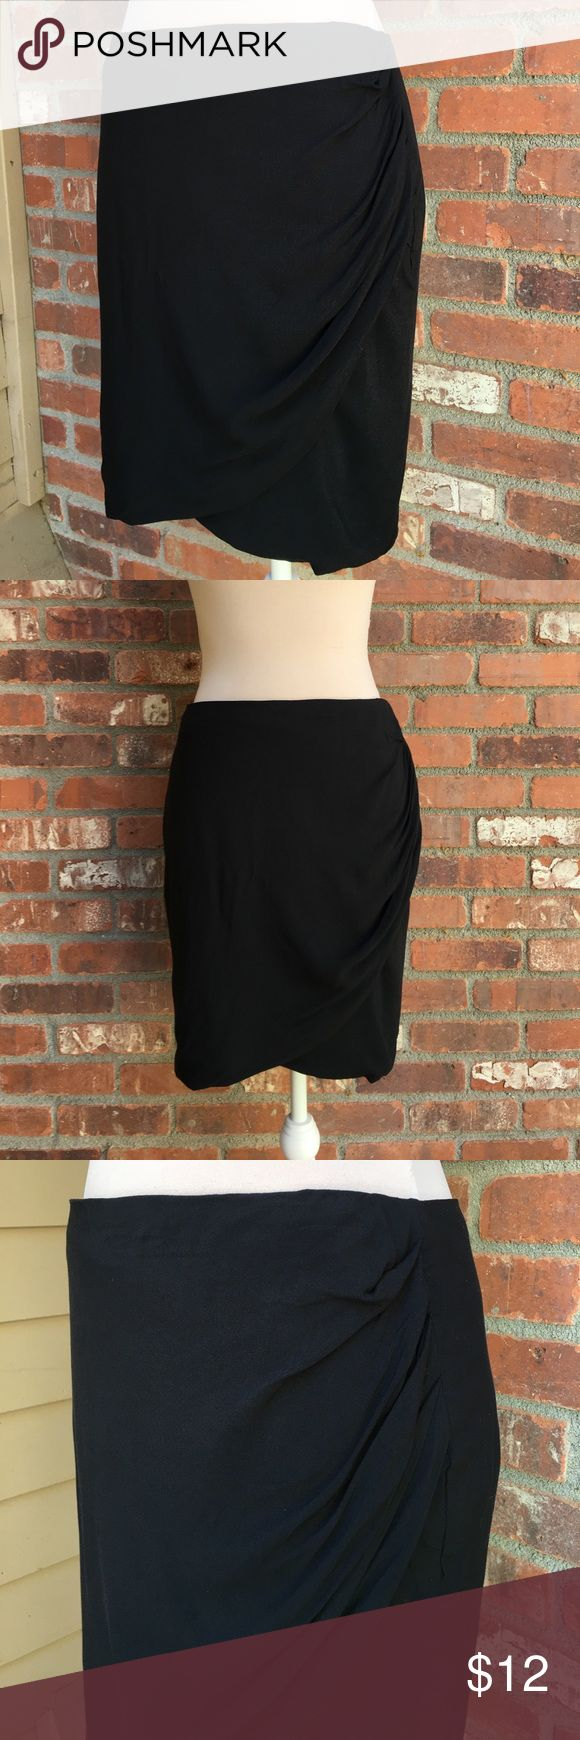 New w/ tags HUSH layered draped black mini skirt 8 New with tags Hush-uk brand layered black mini skirt. Size 8. New never worn. I bought this in London it's an English brand. It has a beautiful tulip front cut, with a cascading edge that resembles a tiered layer. This skirt would be a great way to mix up the work skirt for some personality! 100% rayon. Waist flat measures 18, hip 18, total length 19. Back zip hook eye closure. Soft fabric. Difficult to photograph the layering better in…